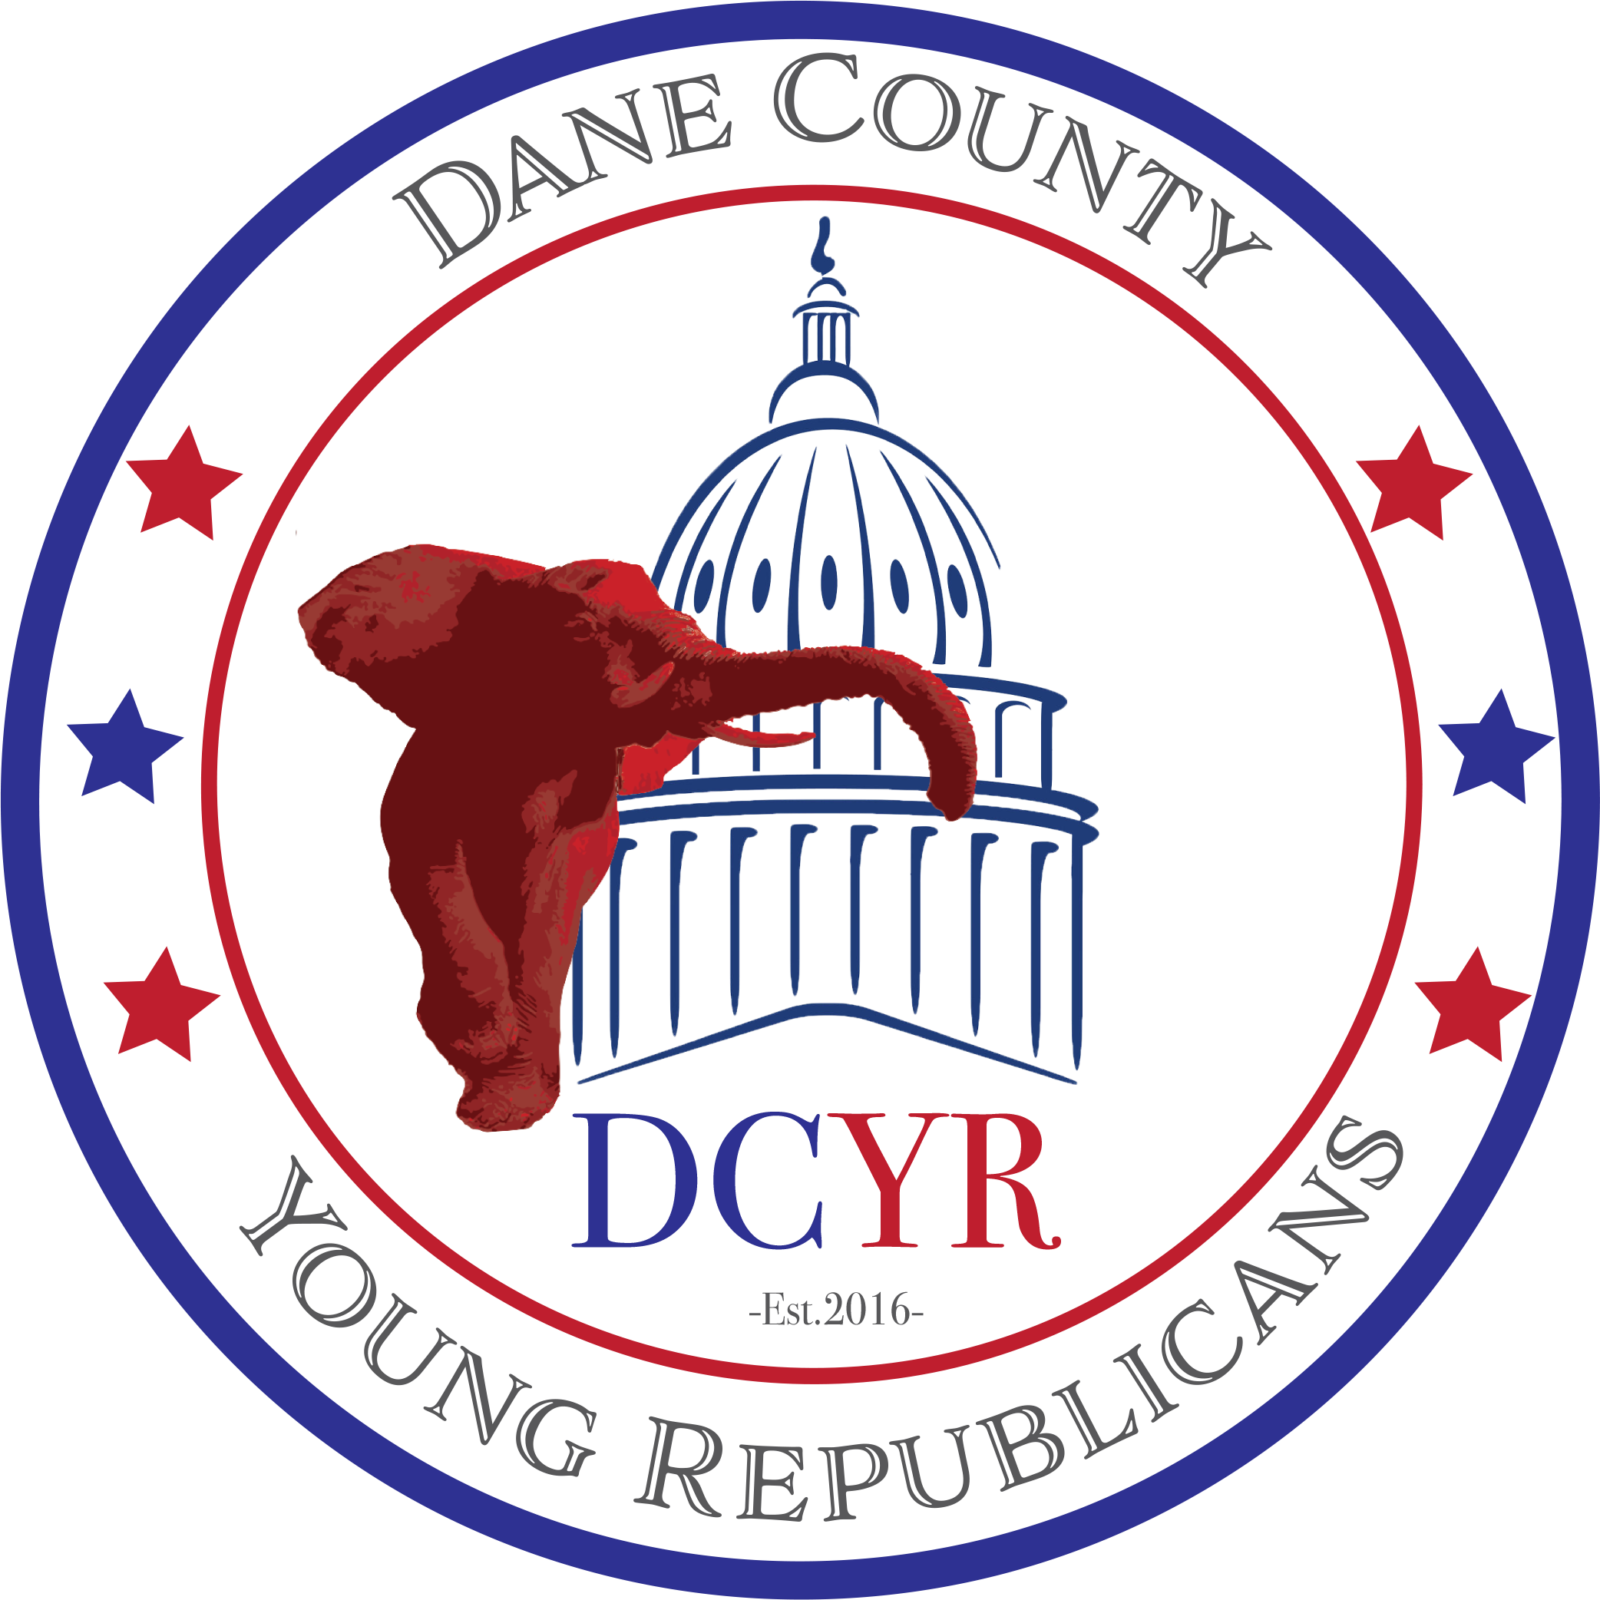 Final-Dane-County-YR-Logo-1-1600x1600.png